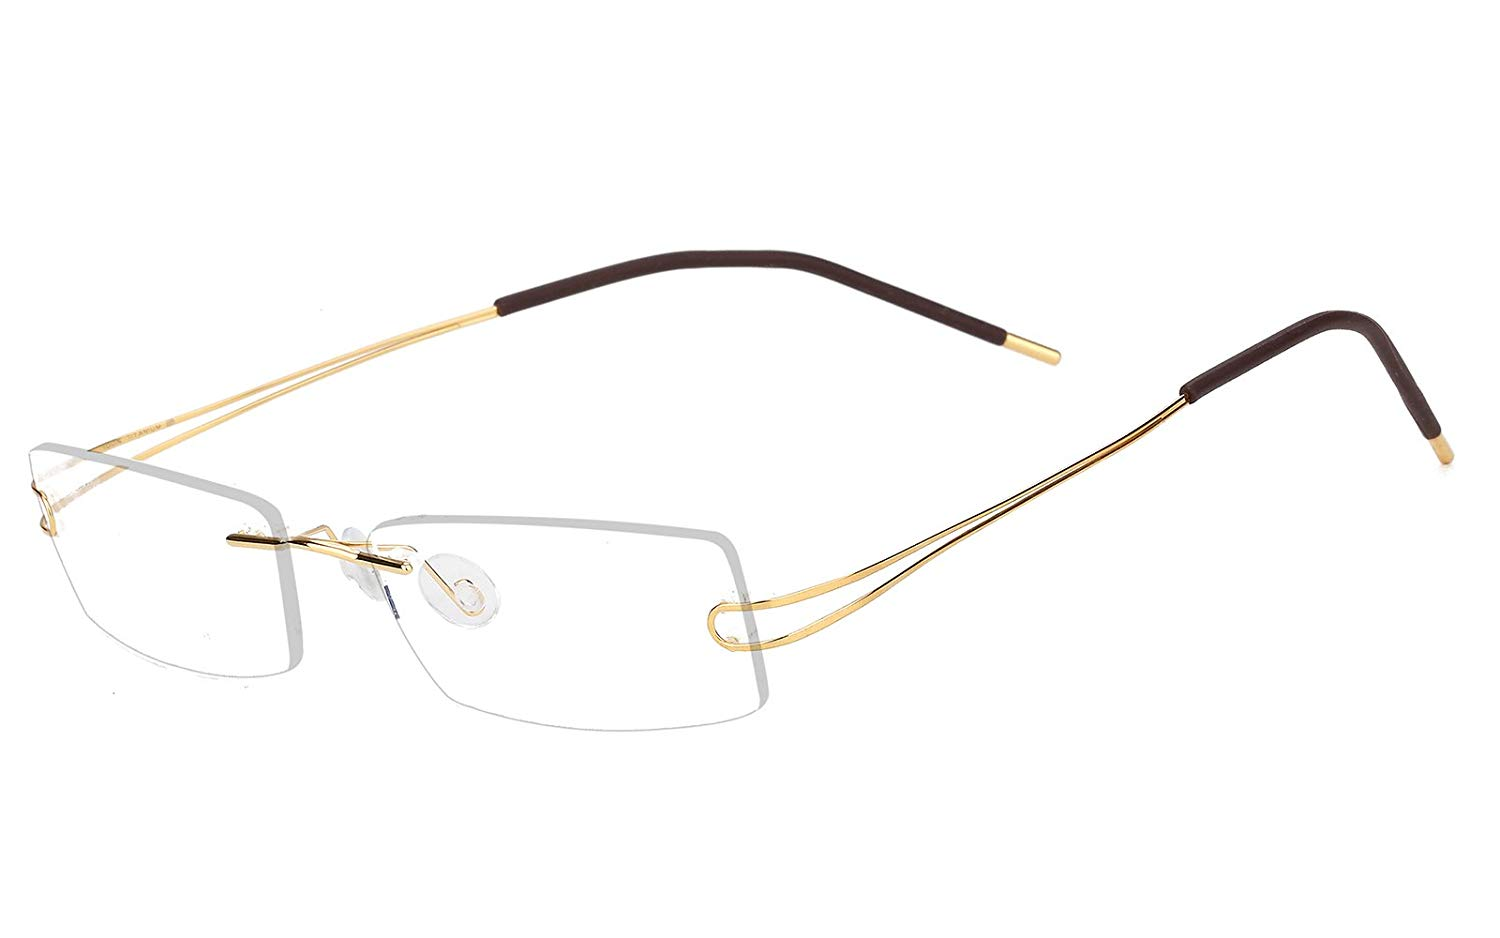 f5cb88914a Get Quotations · Agstum Pure Titanium Rimless Frame Prescription Hingeless  Eyeglasses 52mm